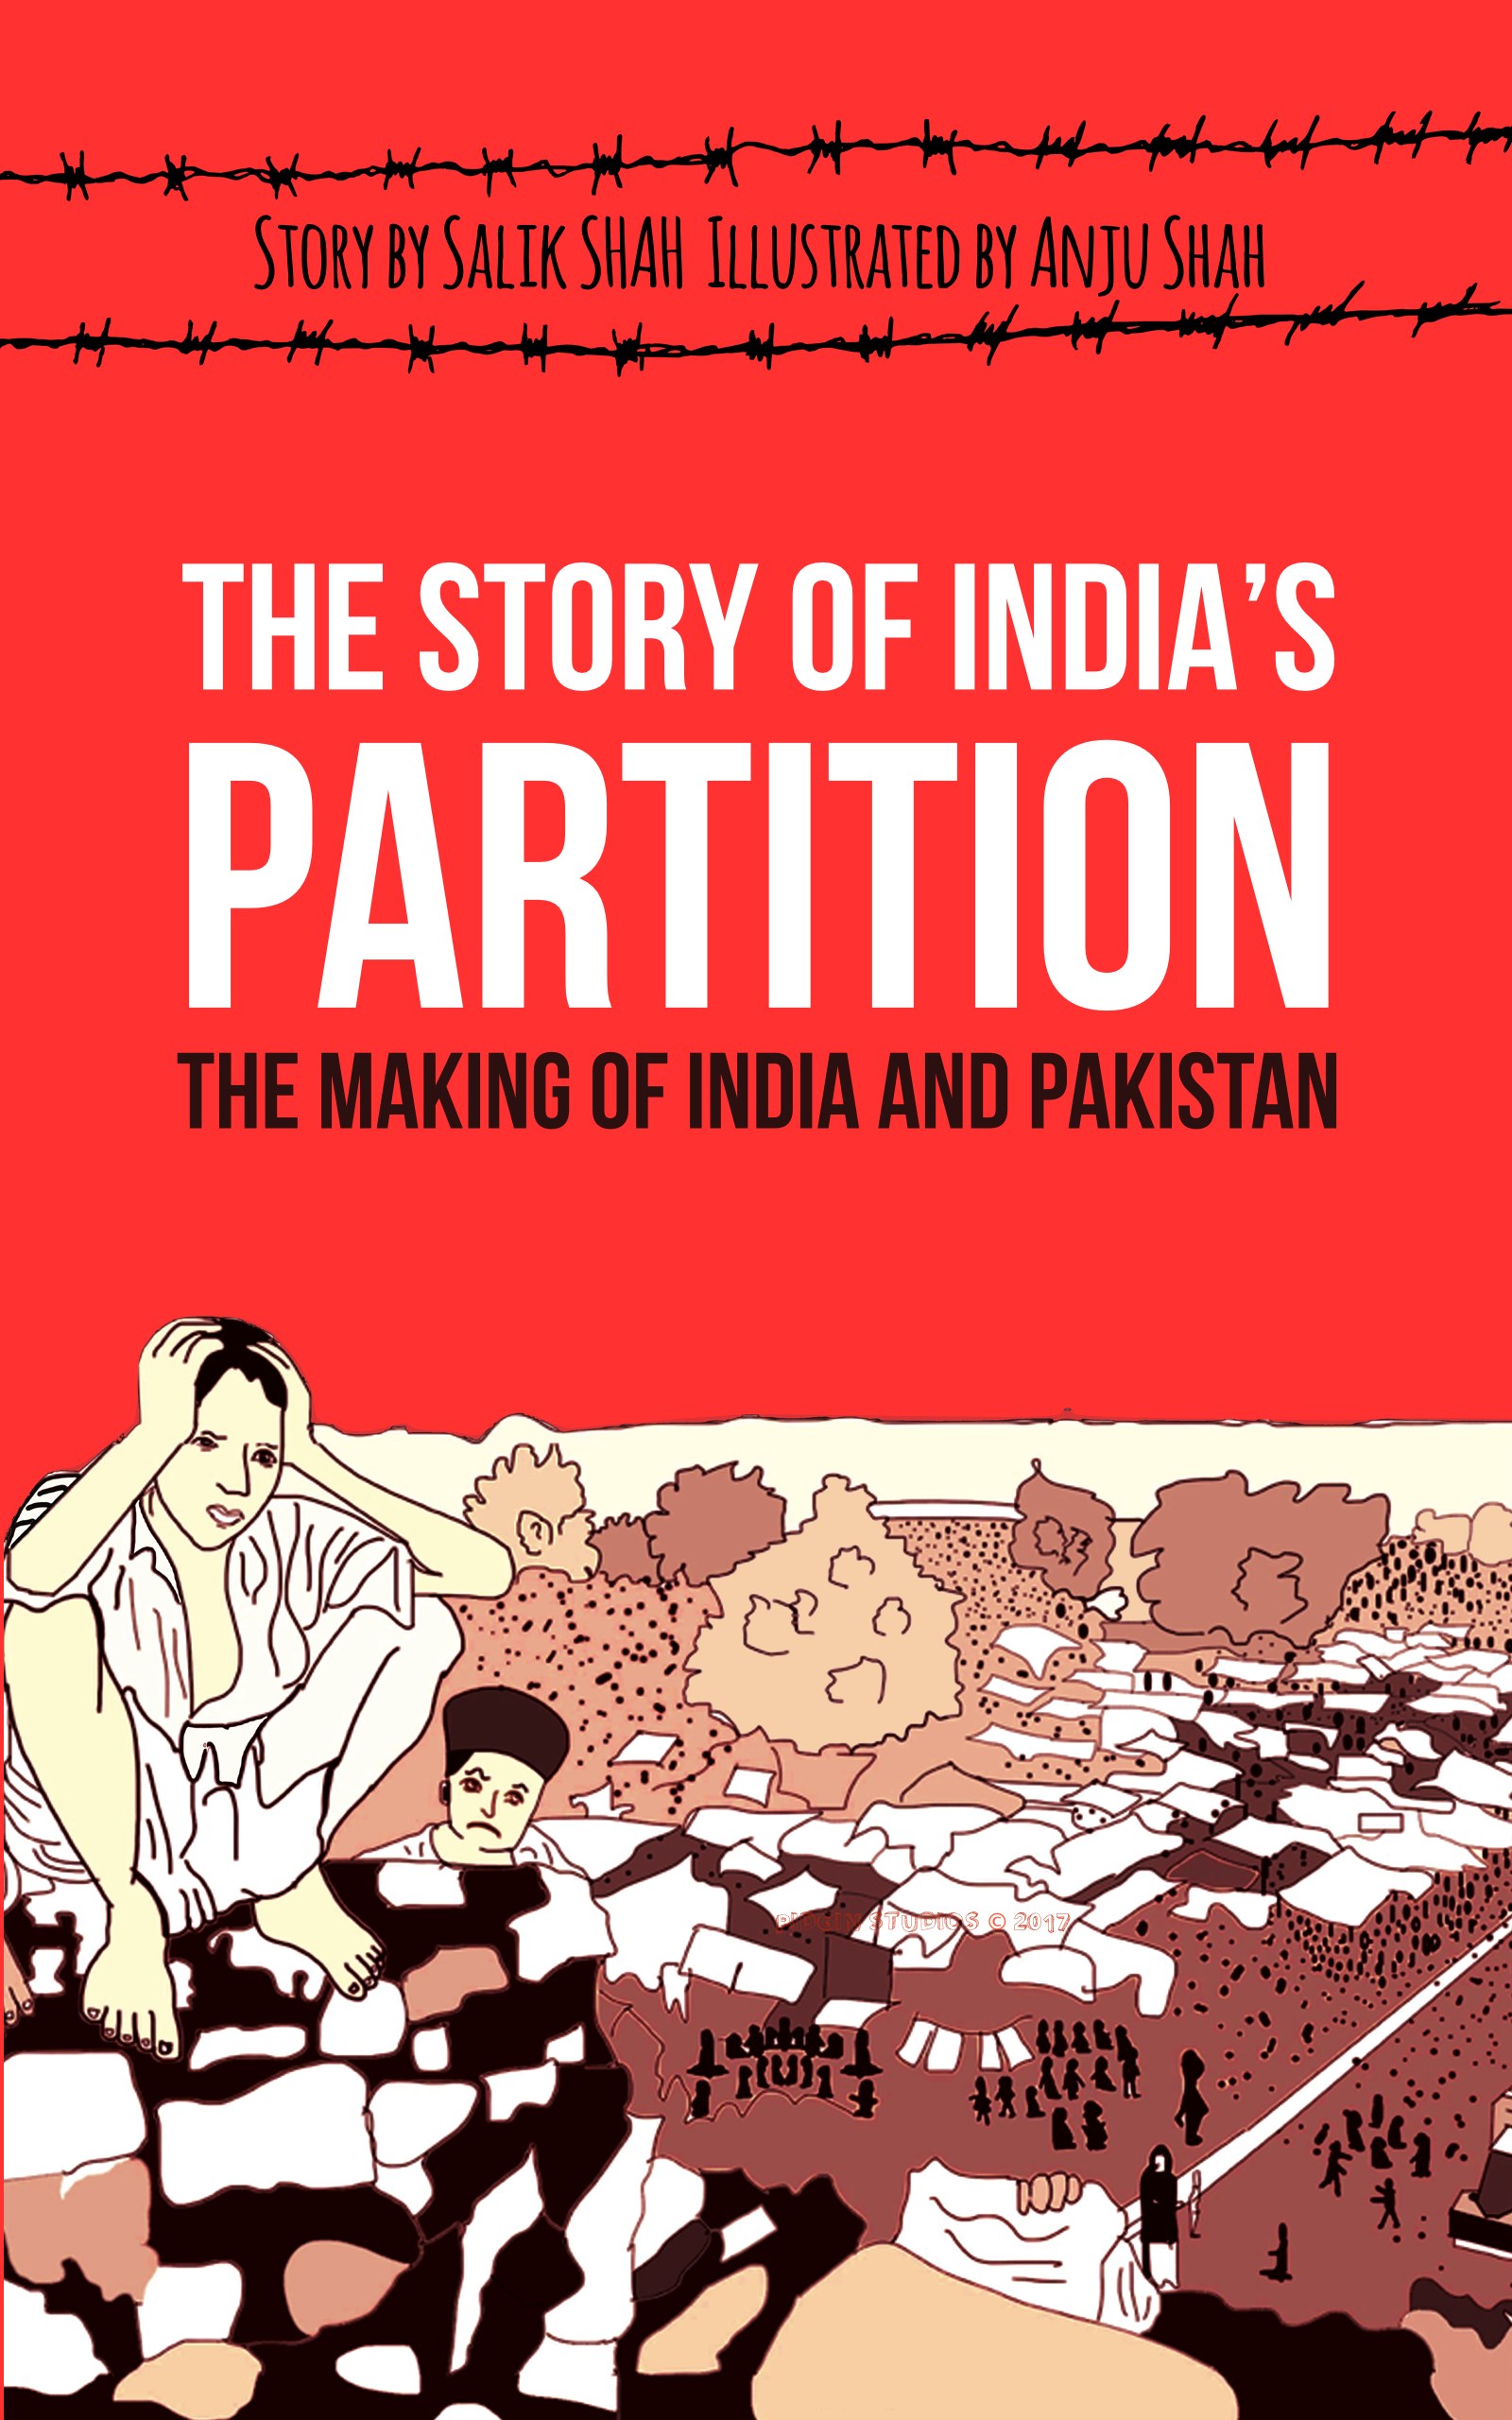 The Story of India's Partition: The Making of India and Pakistan (History  Illustrated), an Ebook by Salik Shah